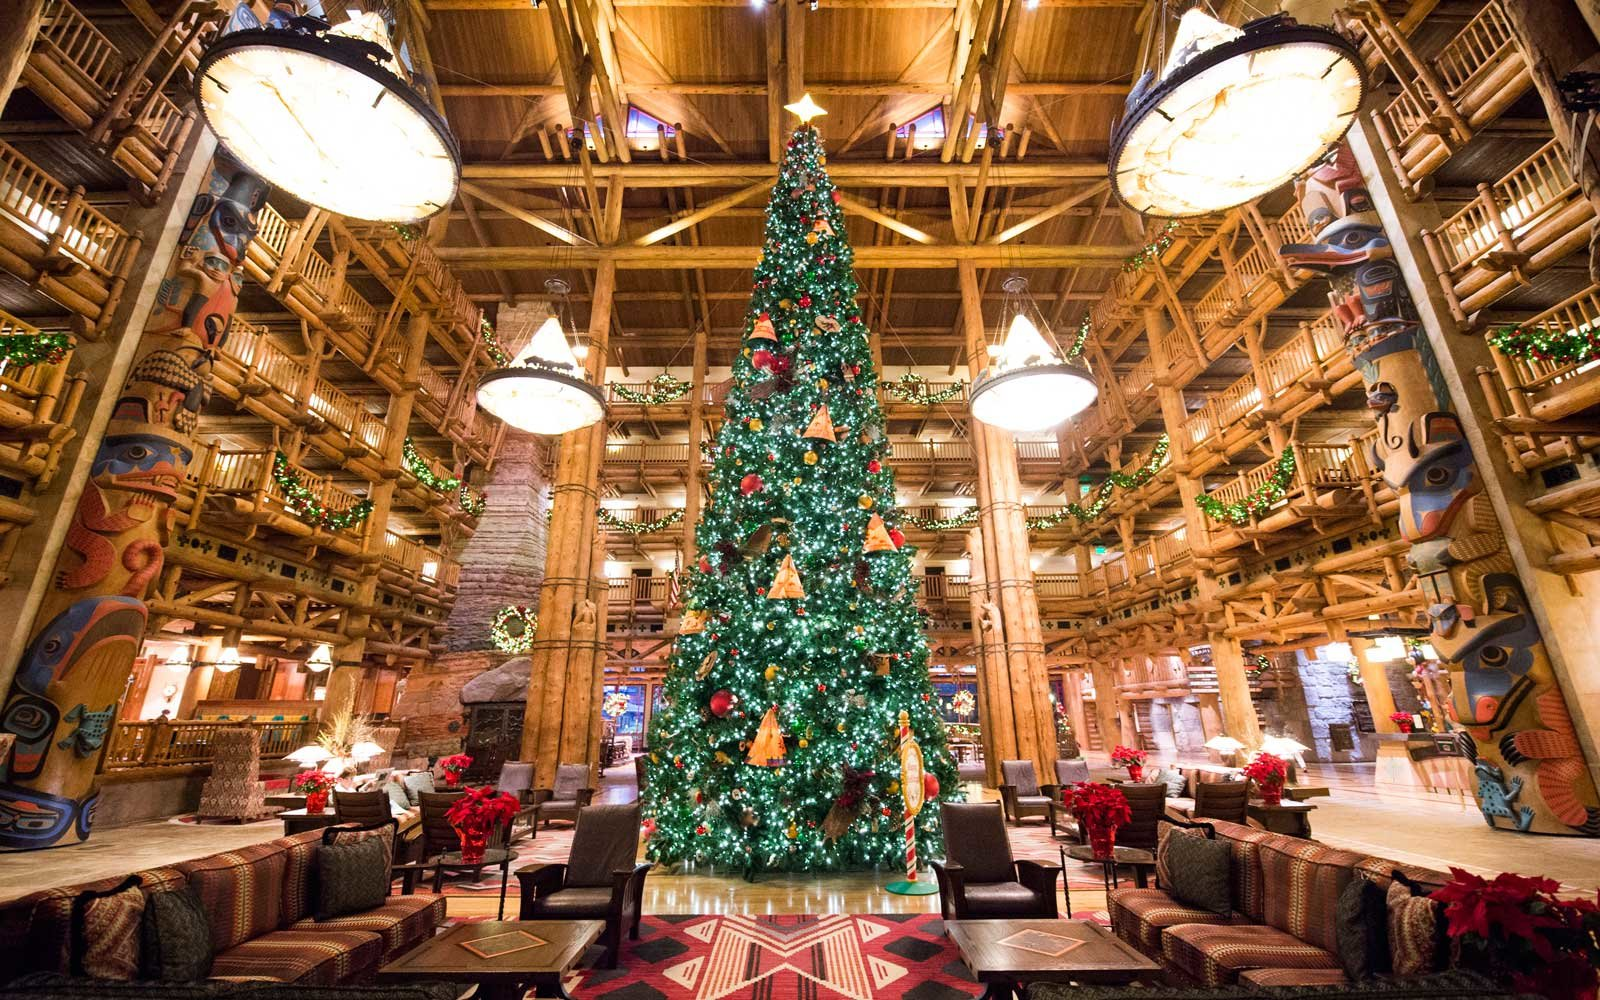 disney worlds wilderness lodge is the best place to spend christmas at the park - The Christmas Lodge